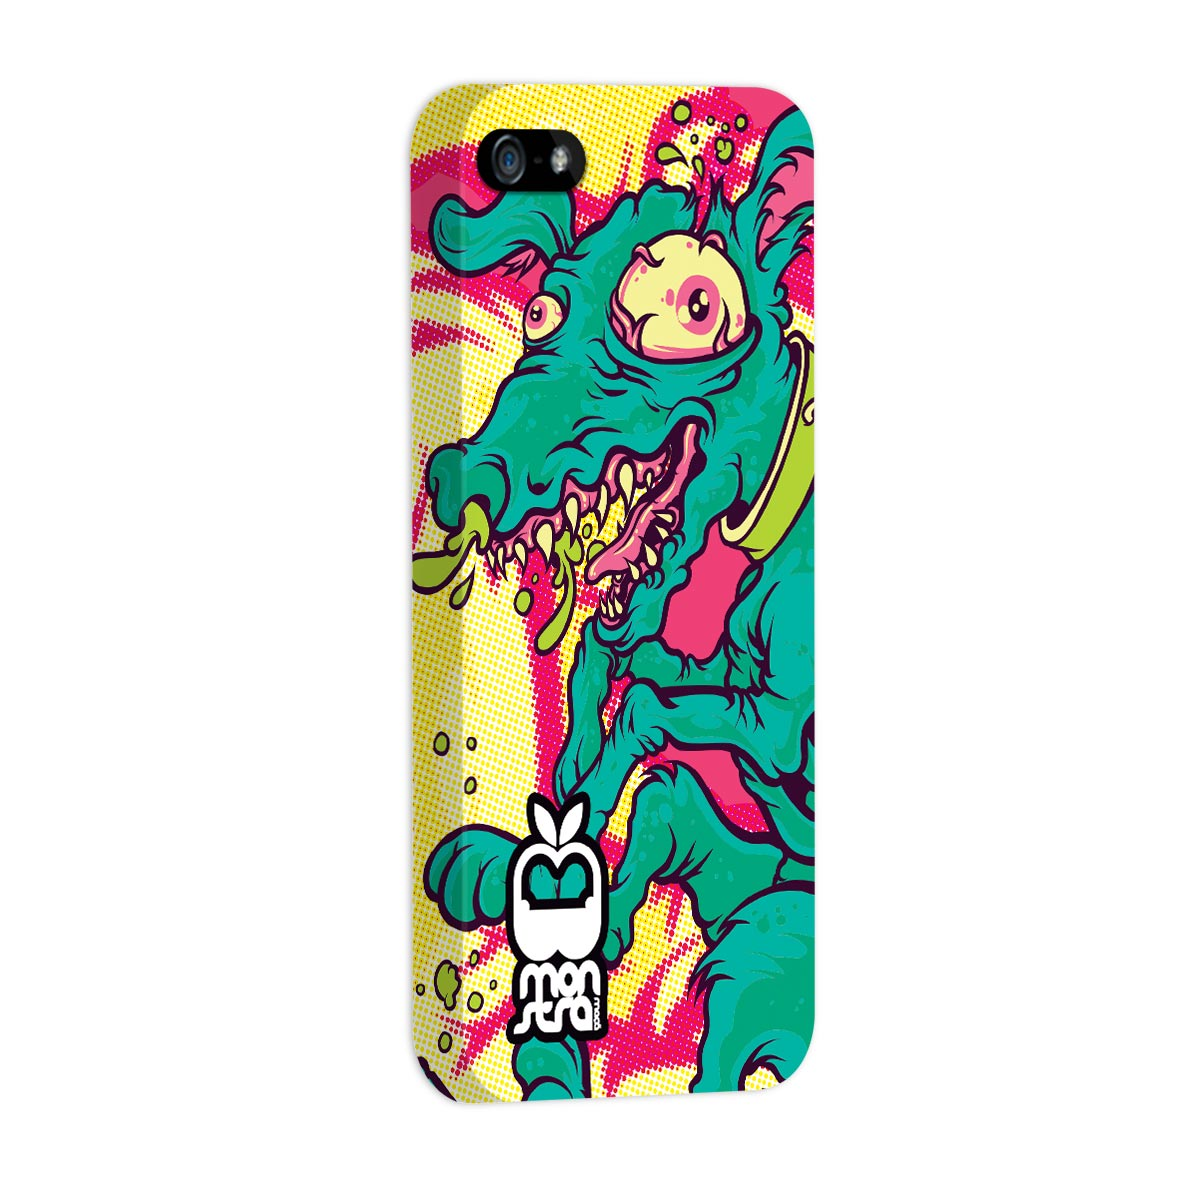 Capa para iPhone 5/5S Monstra Maçã Crazy Dog